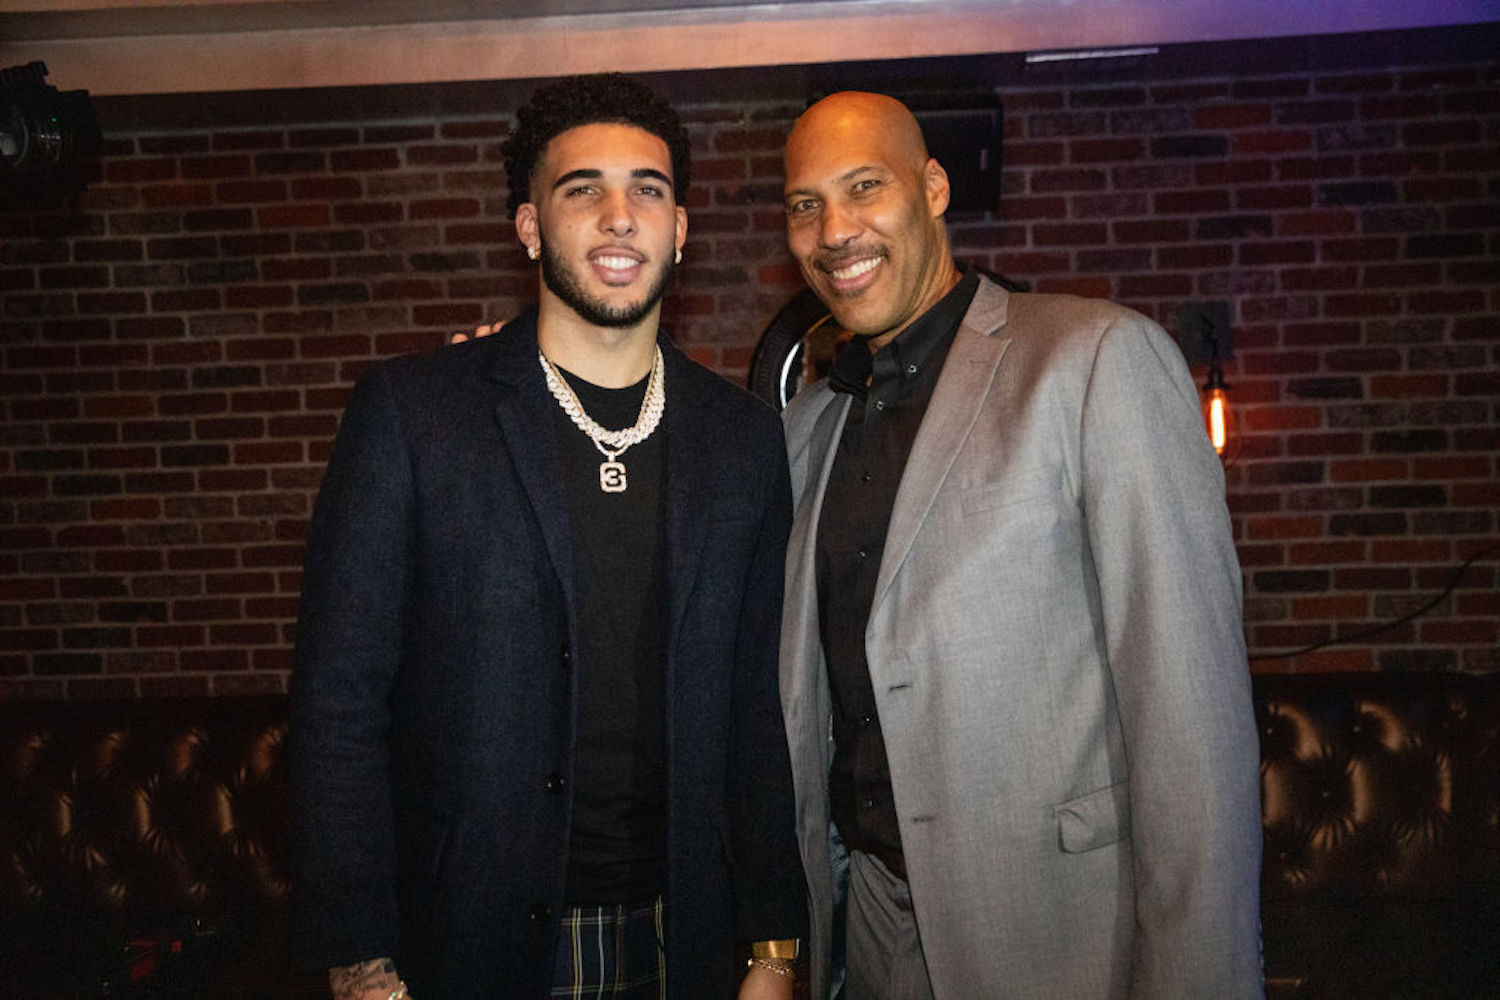 The Detroit Pistons released LiAngelo Ball less than two weeks after signing him, and LaVar Ball had some harsh words for the franchise.